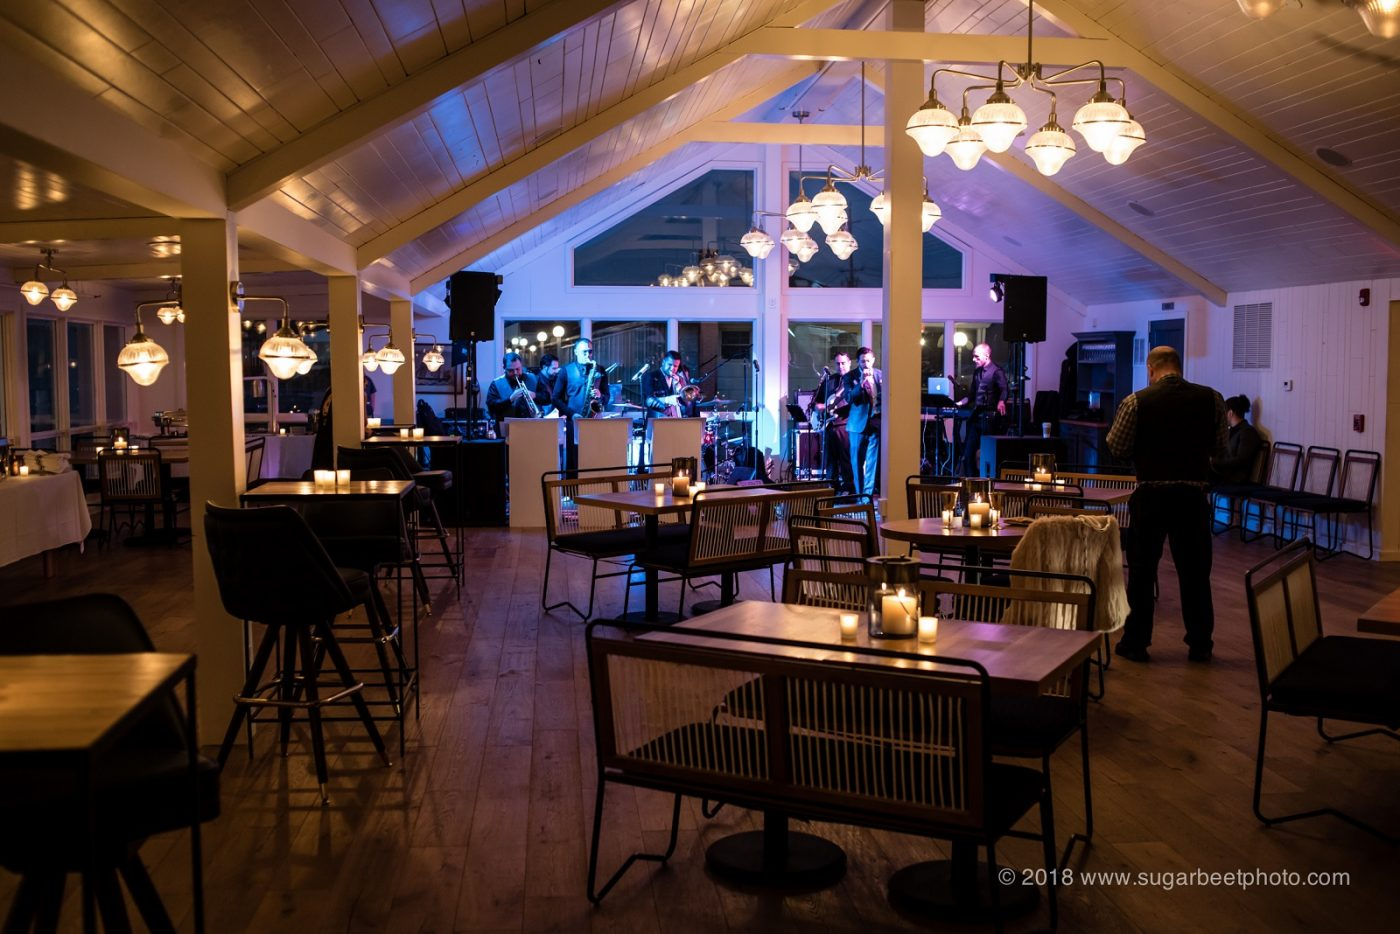 Evening wedding in the Halyard Dining Room